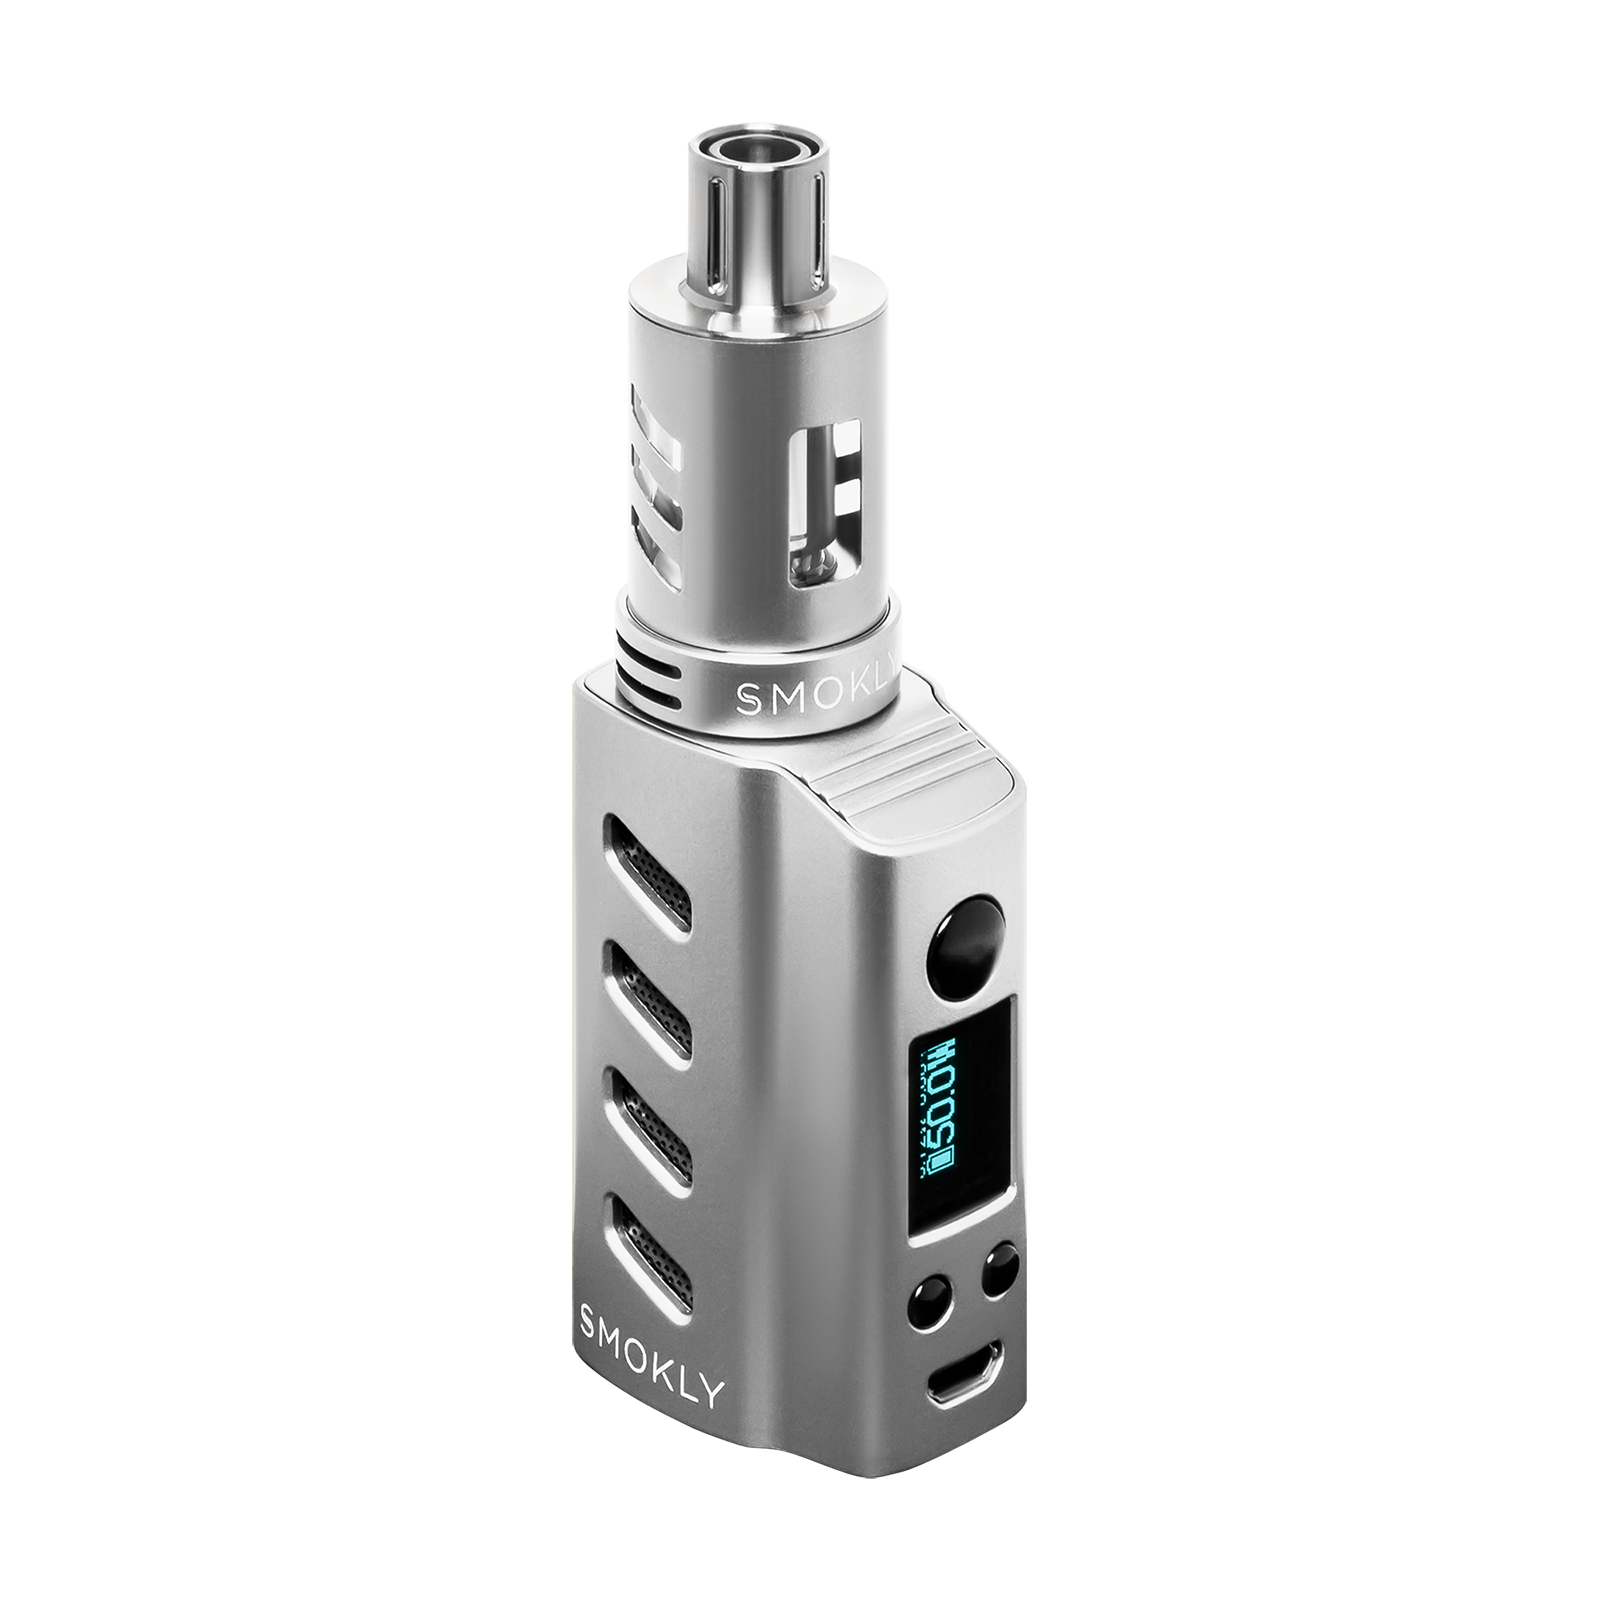 Vape kit product photo